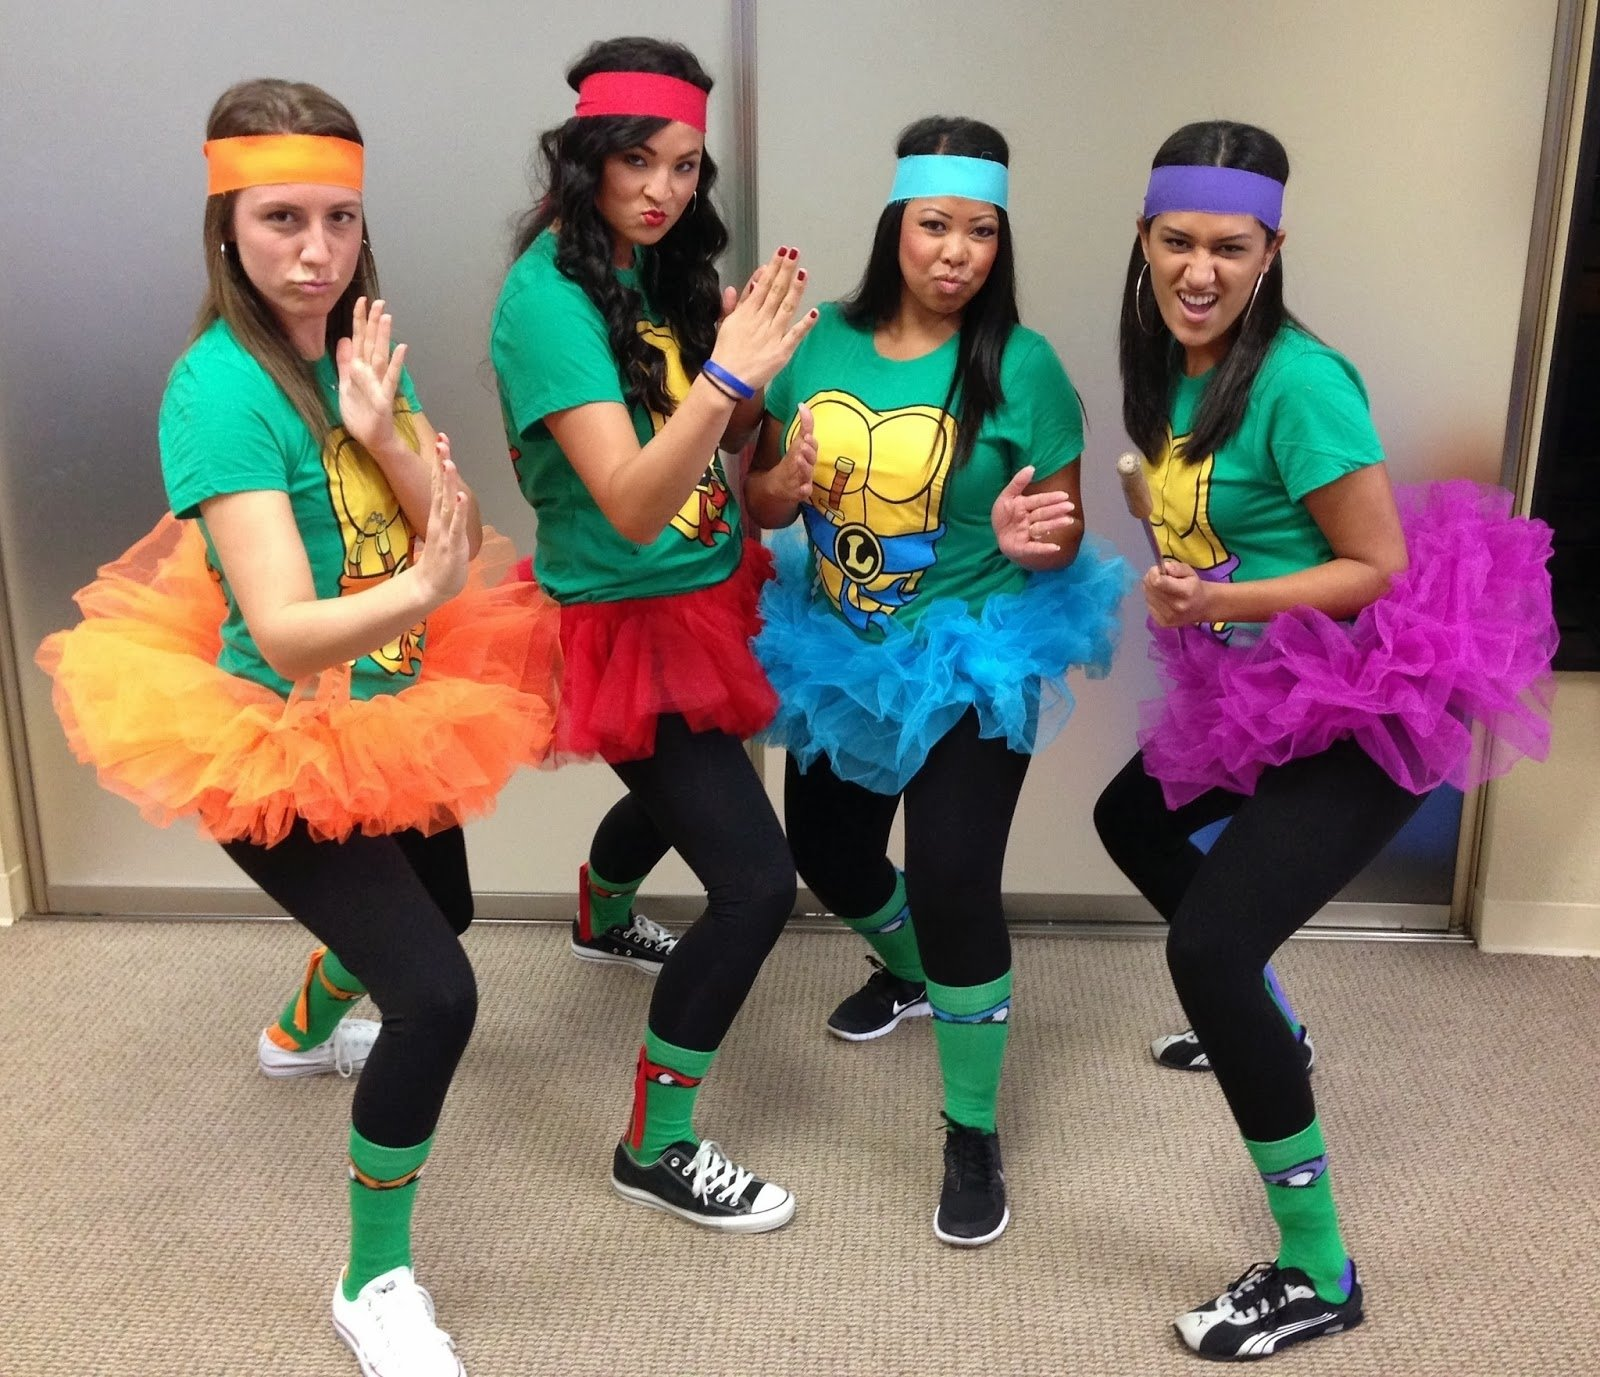 10 Pretty Group Costume Ideas For 6 26 90s group halloween costumes you and your squad should dress up 4 2020